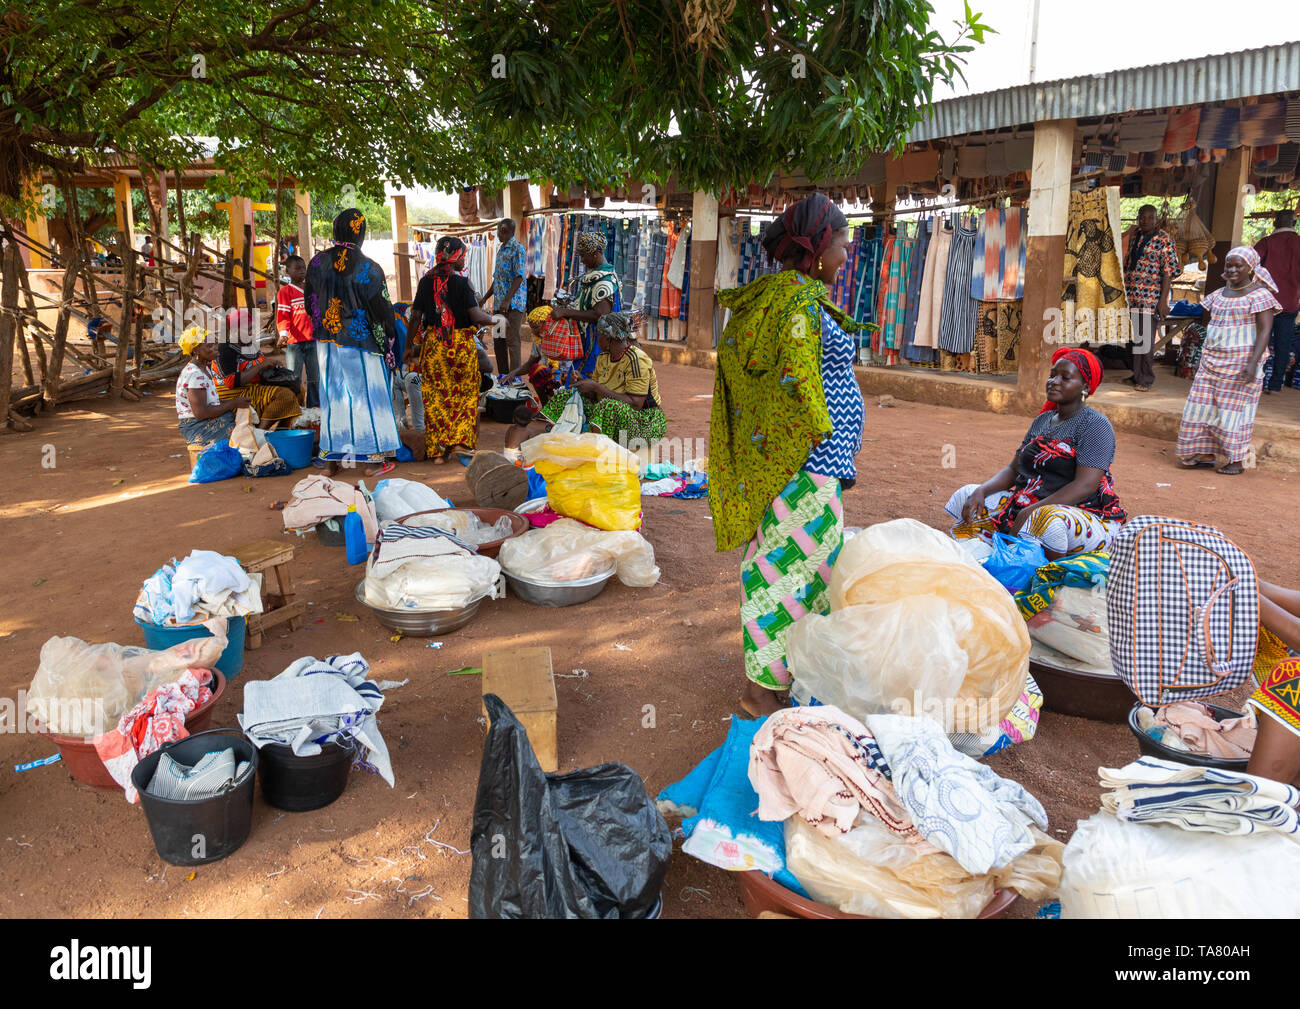 Senufo women selling clothes under a giant tree in a village, Savanes district, Waraniene, Ivory Coast - Stock Image